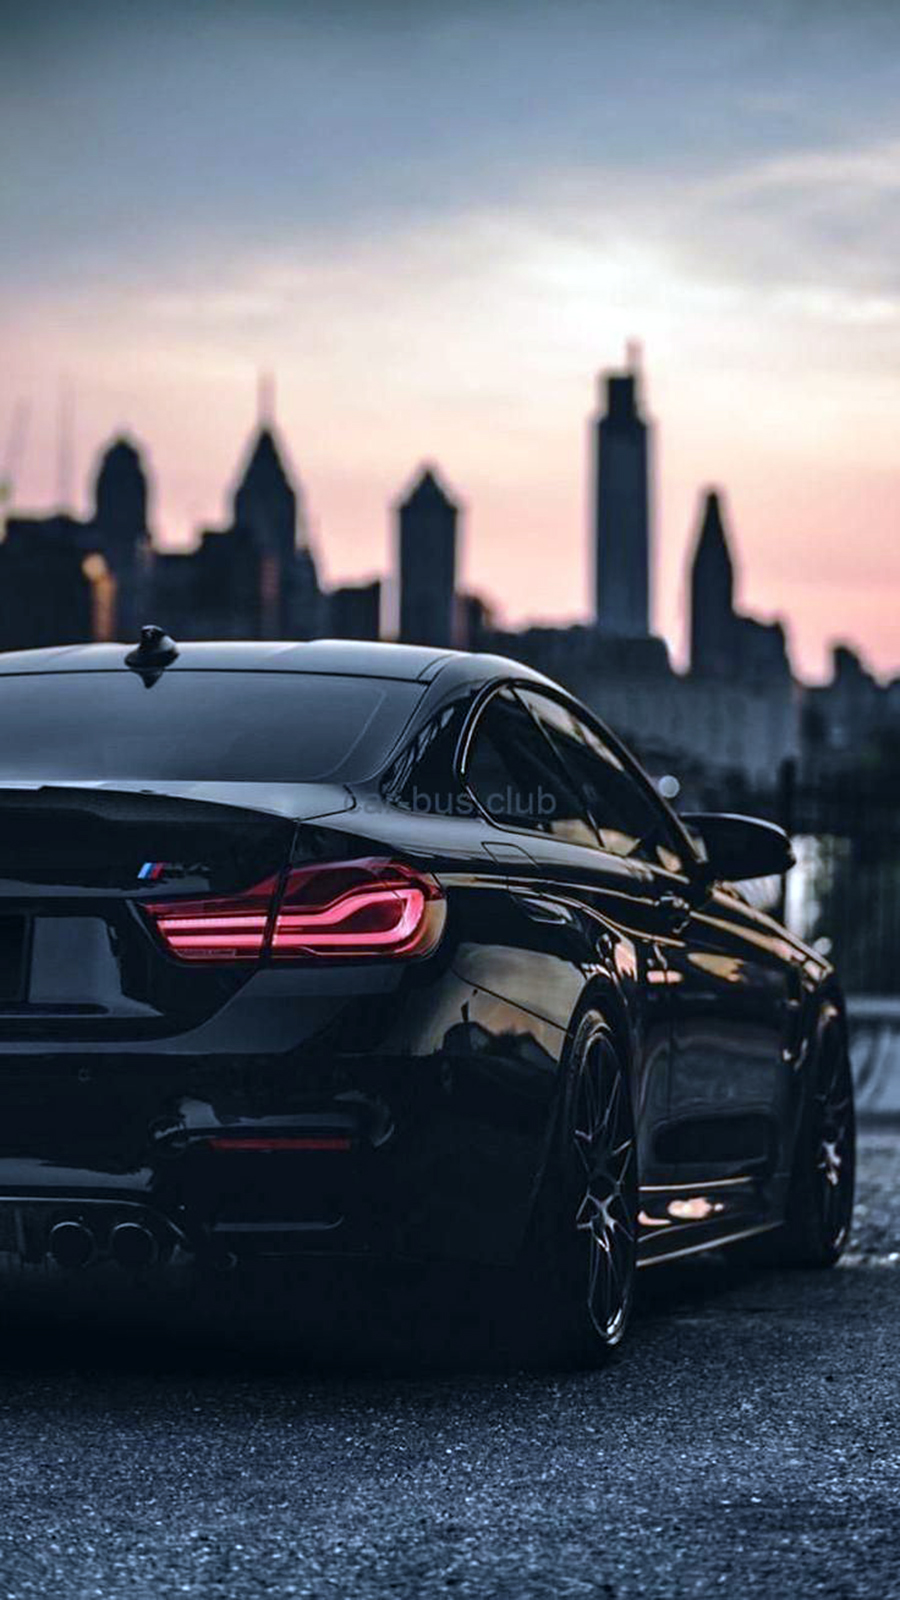 Back View Supercars HD Wallpapers Download free Bestwallpapers.net (2)